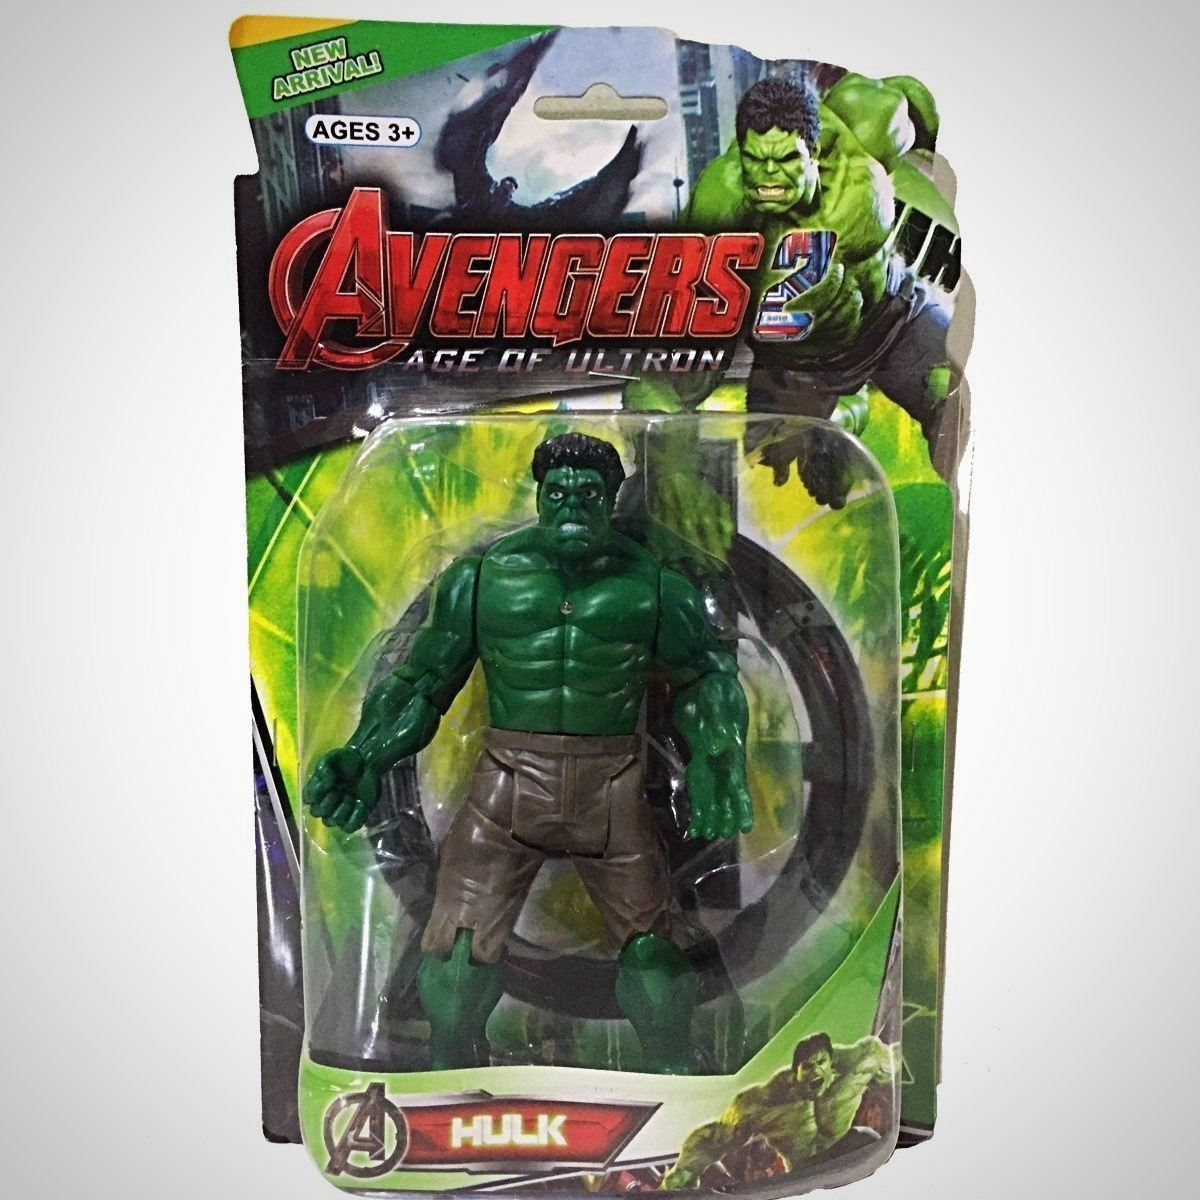 O Incrível Hulk - Vingadores: Era De Ultron - - Action Figures Age Of Avengers Colecionáveis My Geek Stock